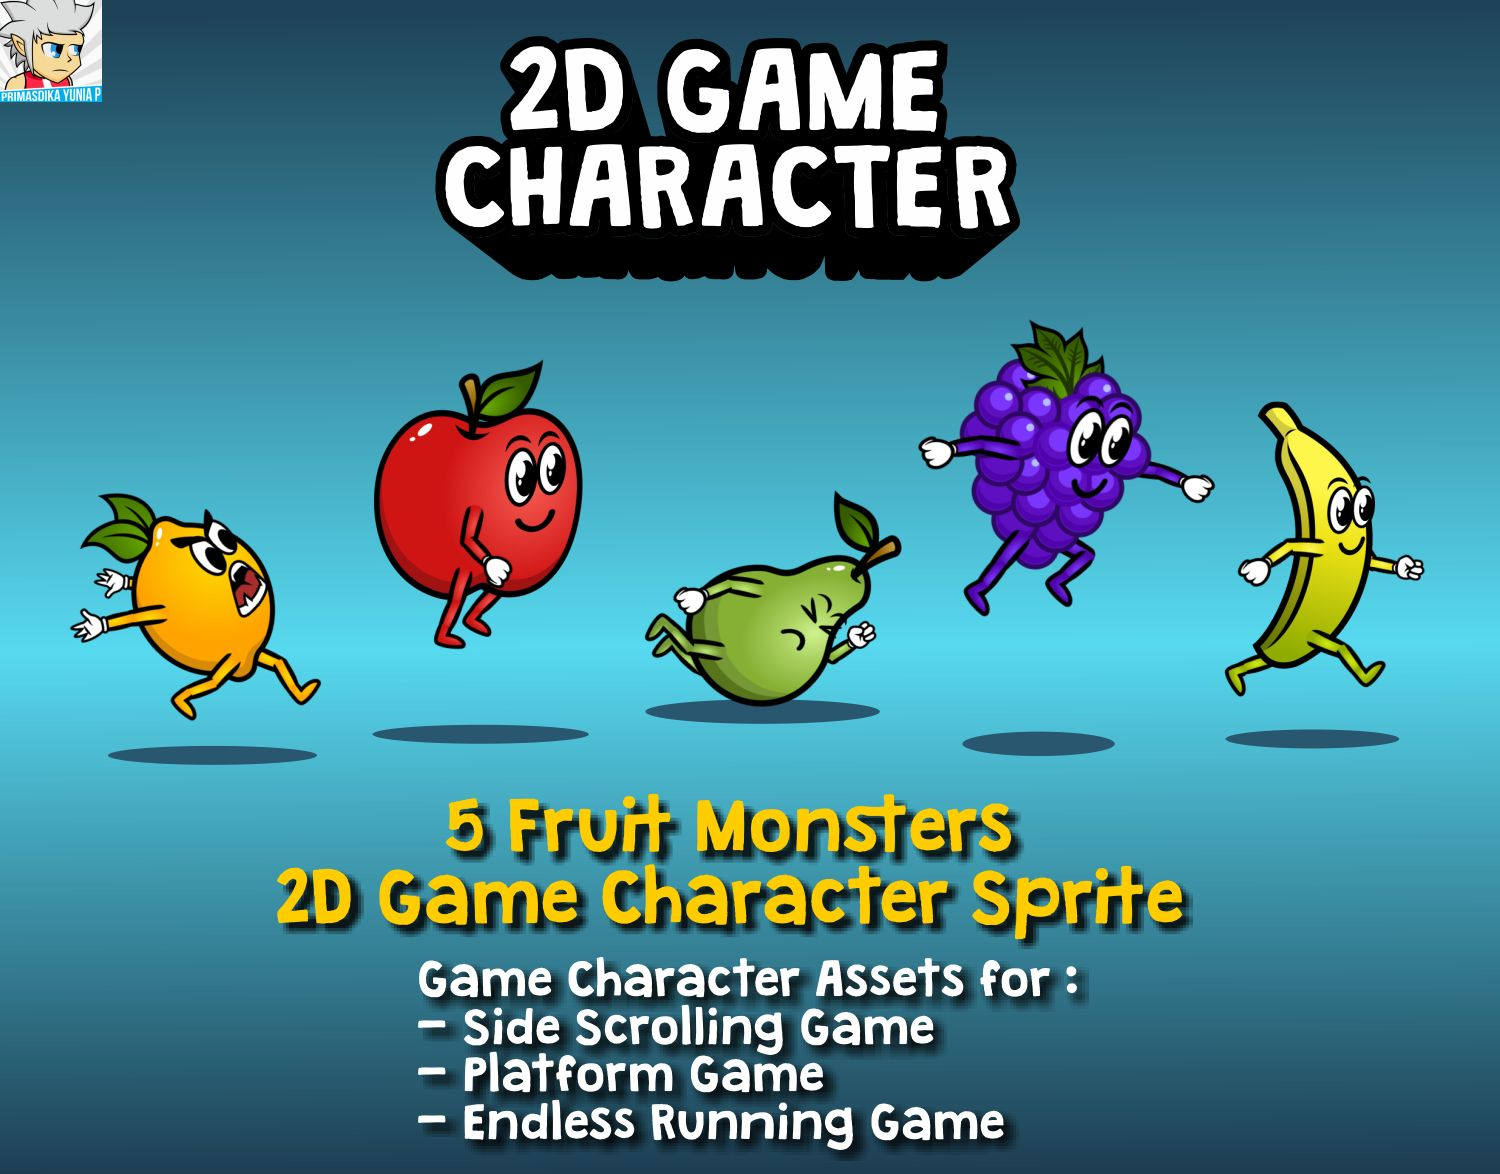 5 Fruit Monsters 2D Game Character Sprite Screenshot 1